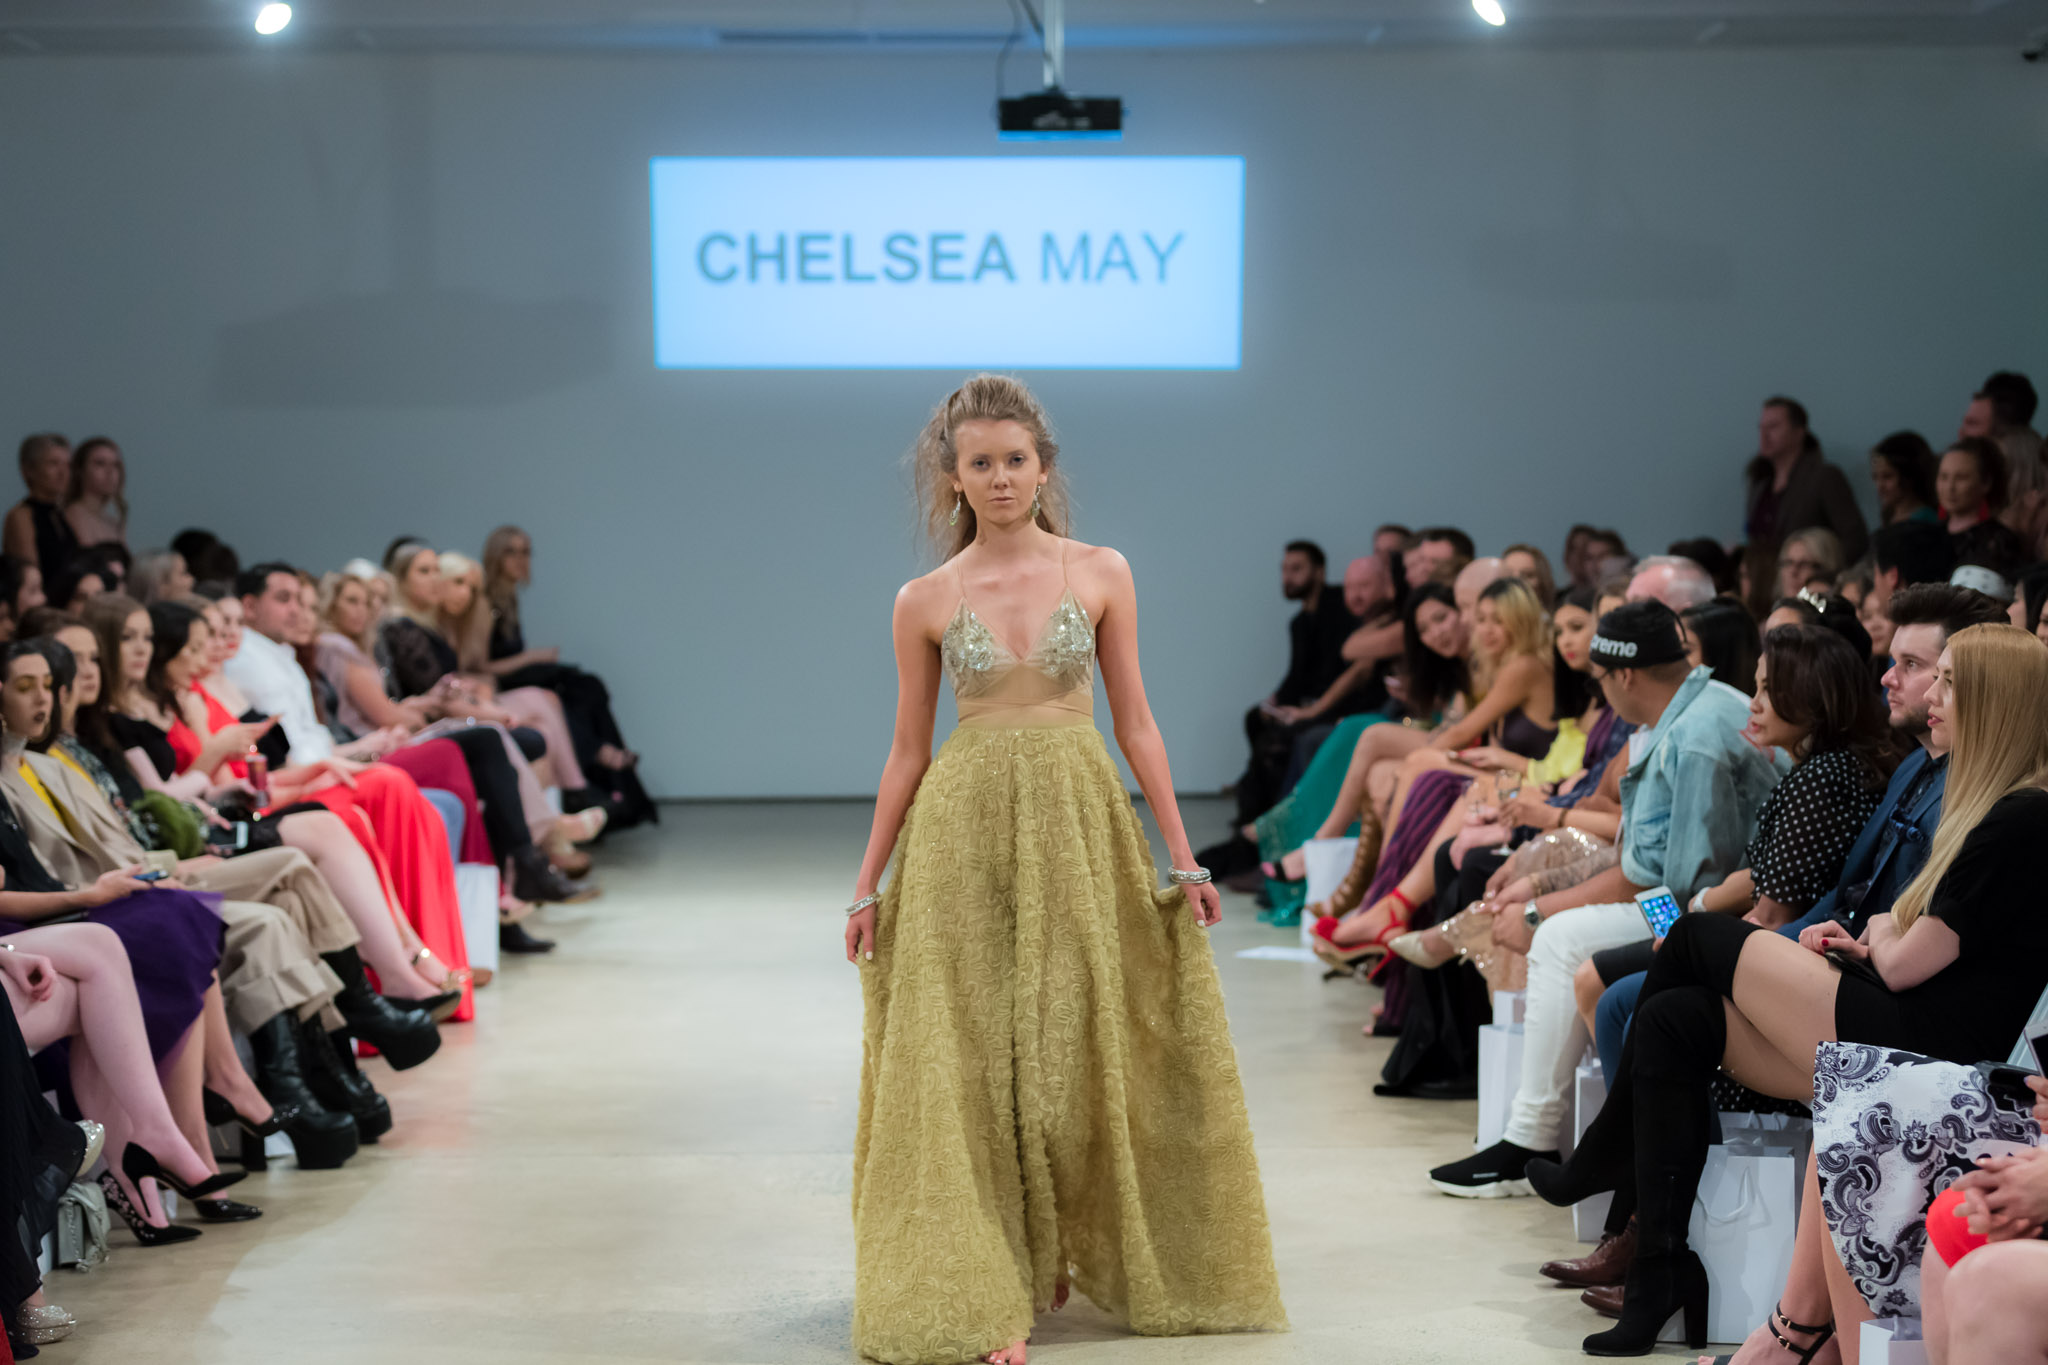 Chelsea May